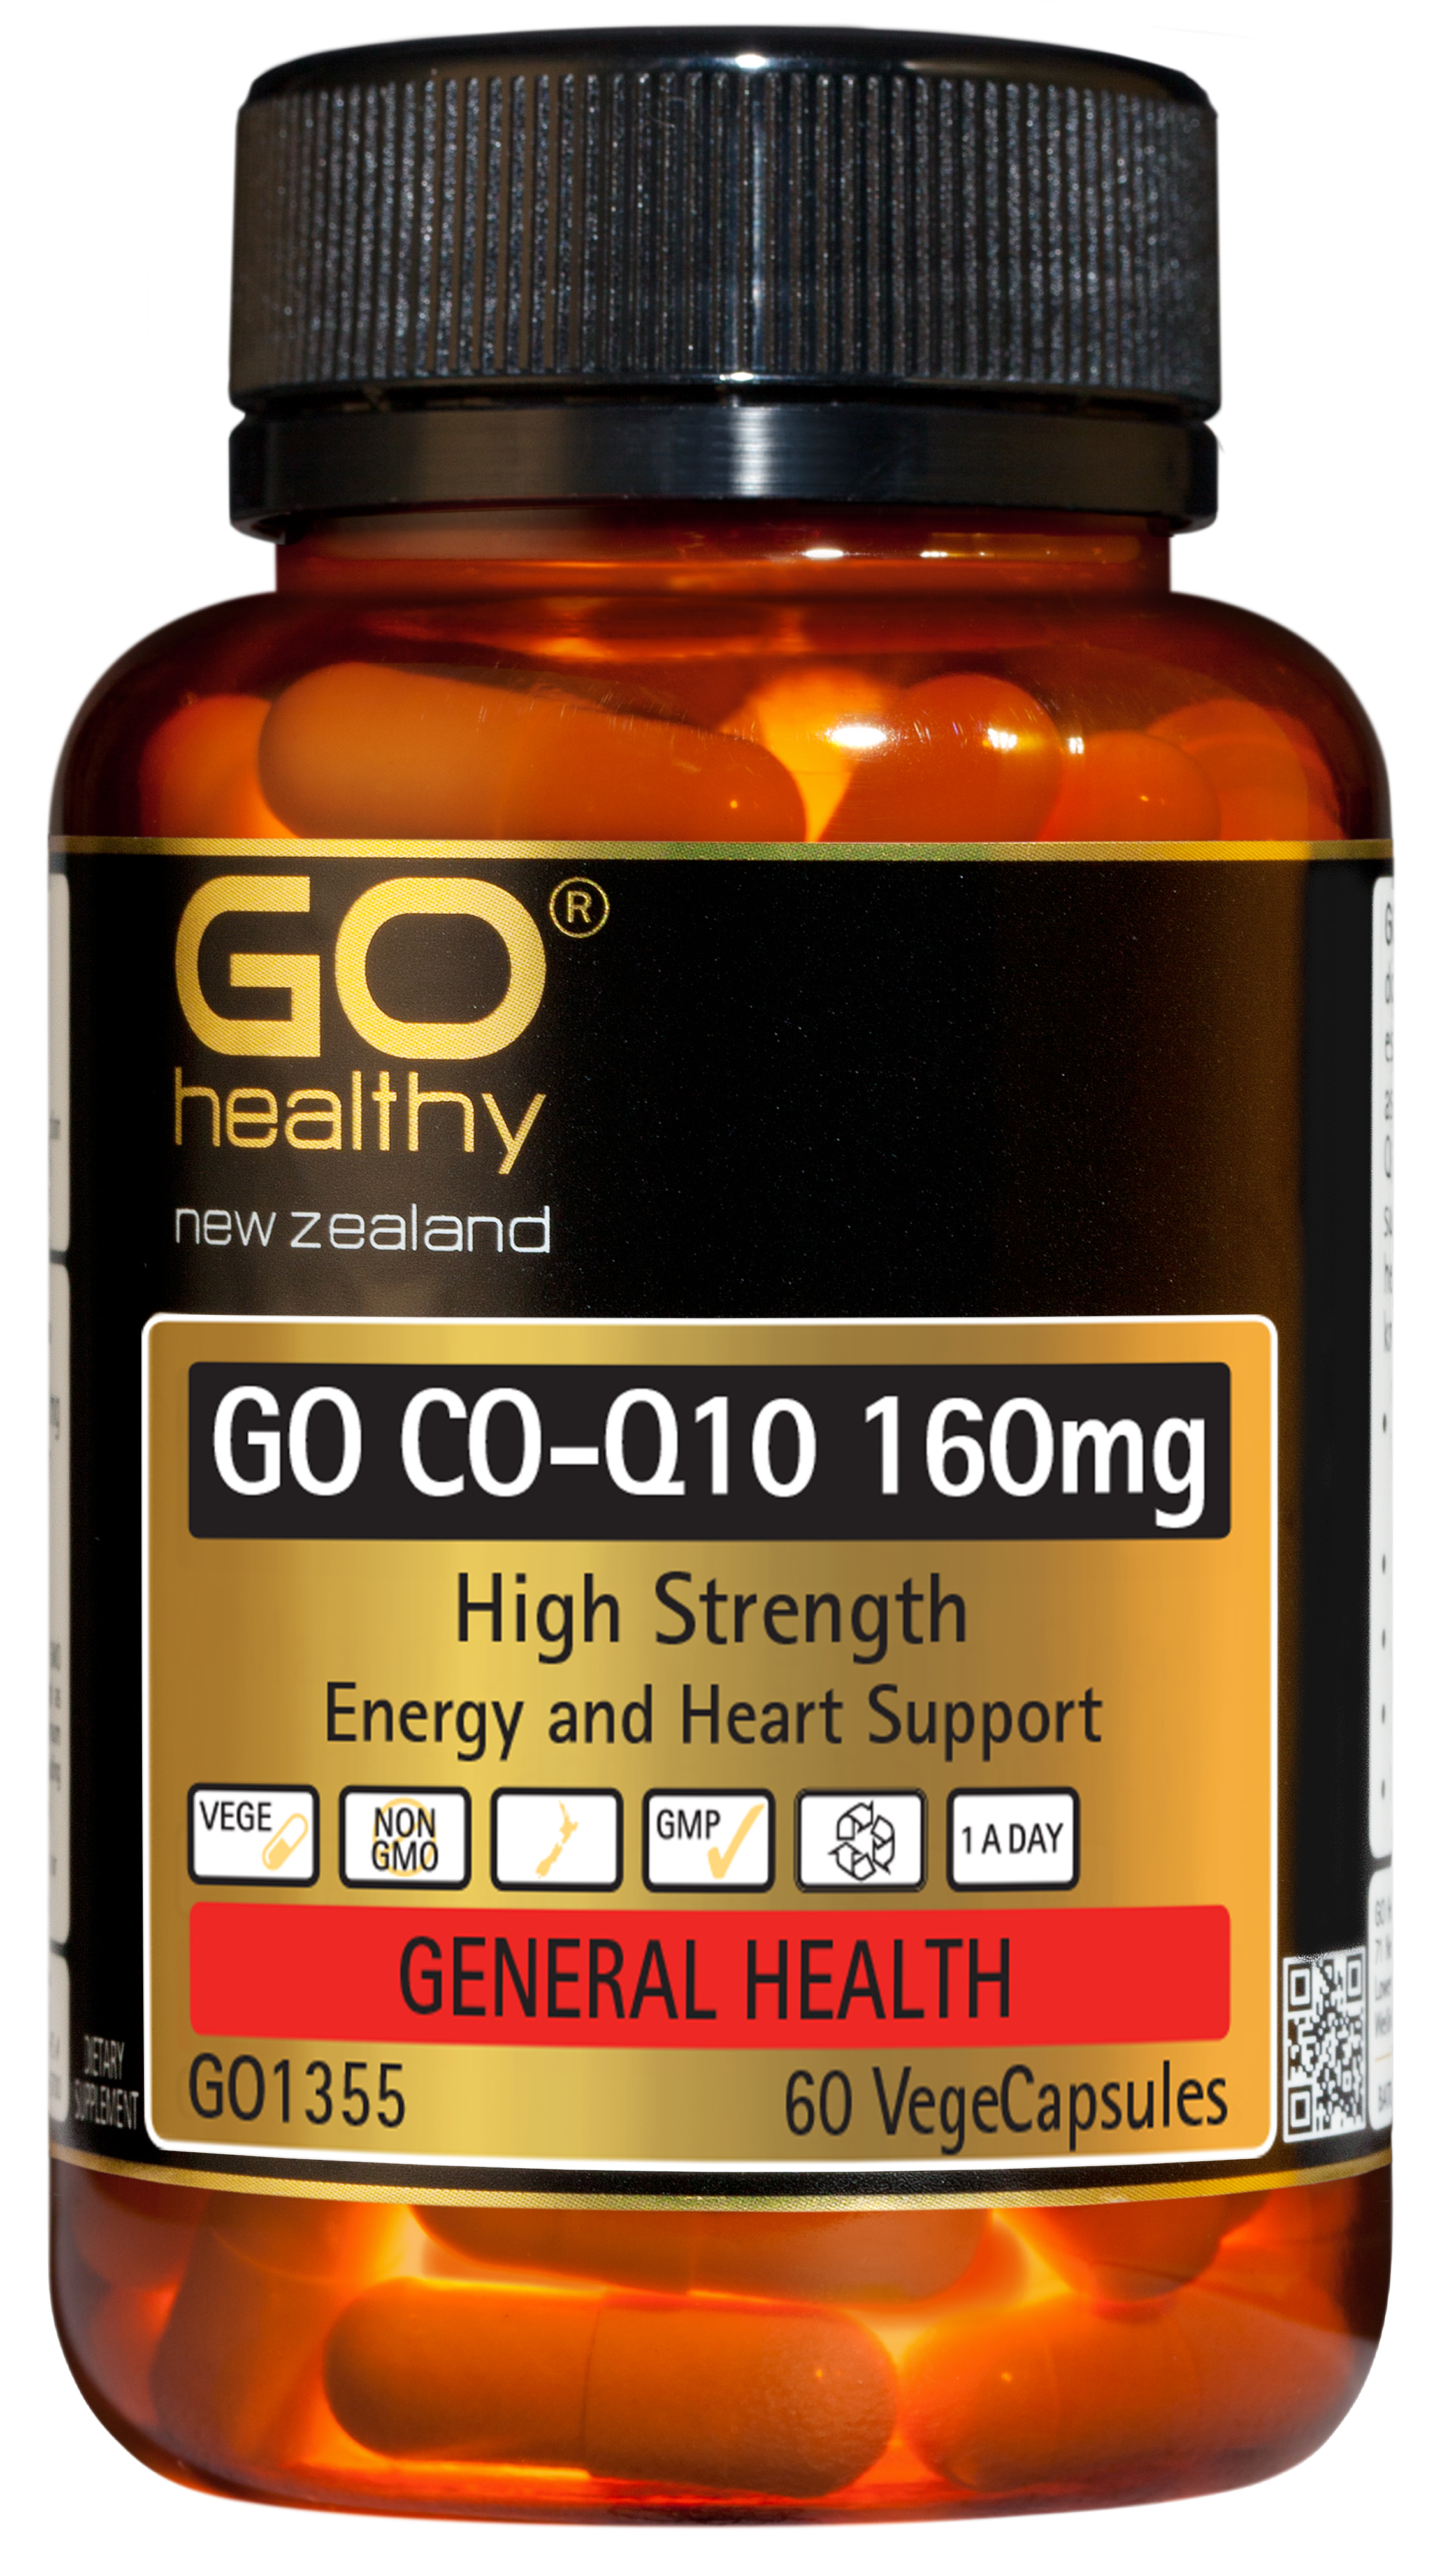 GO Healthy Co-Q10 160mg 60 VegeCaps